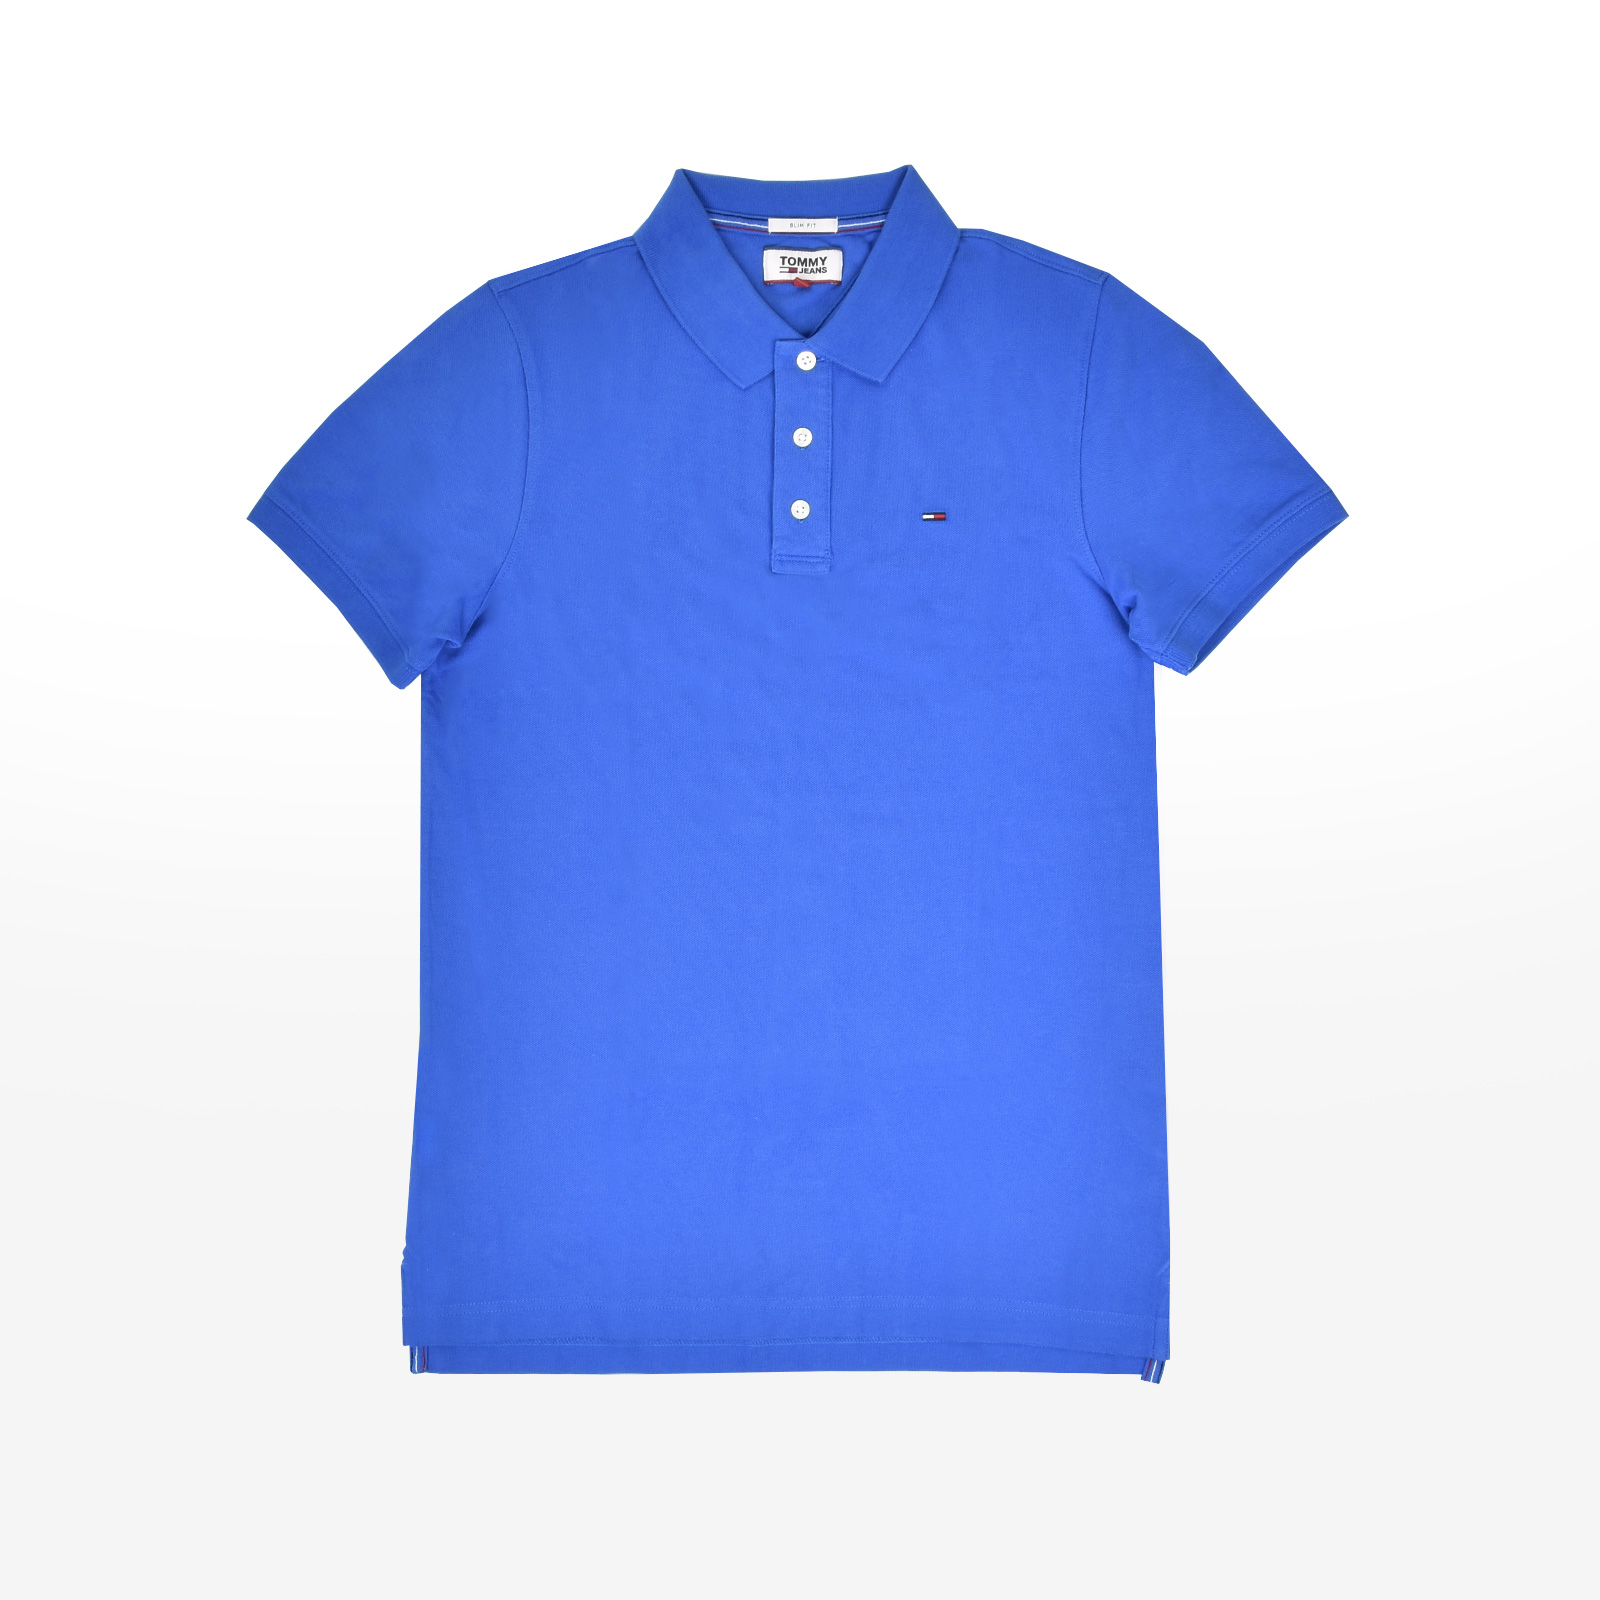 ed7a33286d8a Tommy hilfiger - THDM BASIC FLAG POLO S S - COLONIAL BLUE